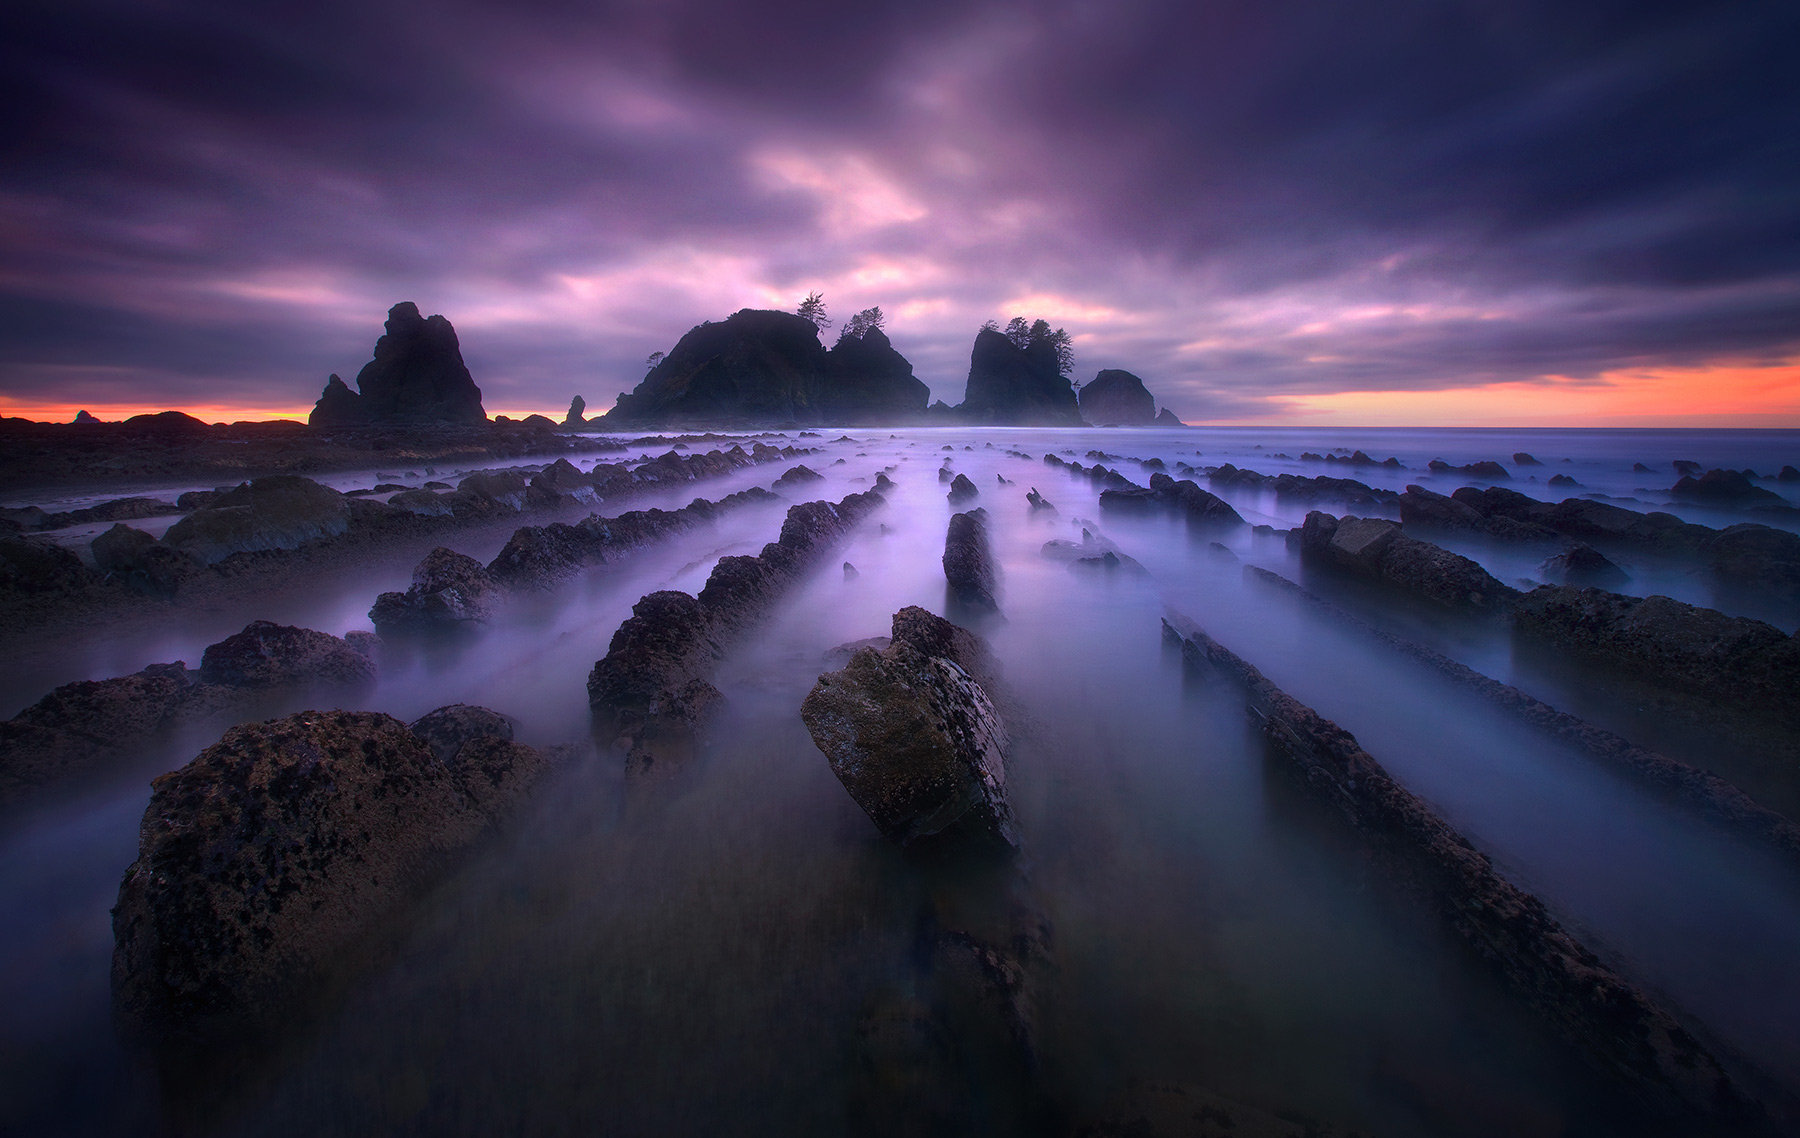 long exposure, twilight, surreal, colors, beauty, olympic, wilderness, coast, washington, photo